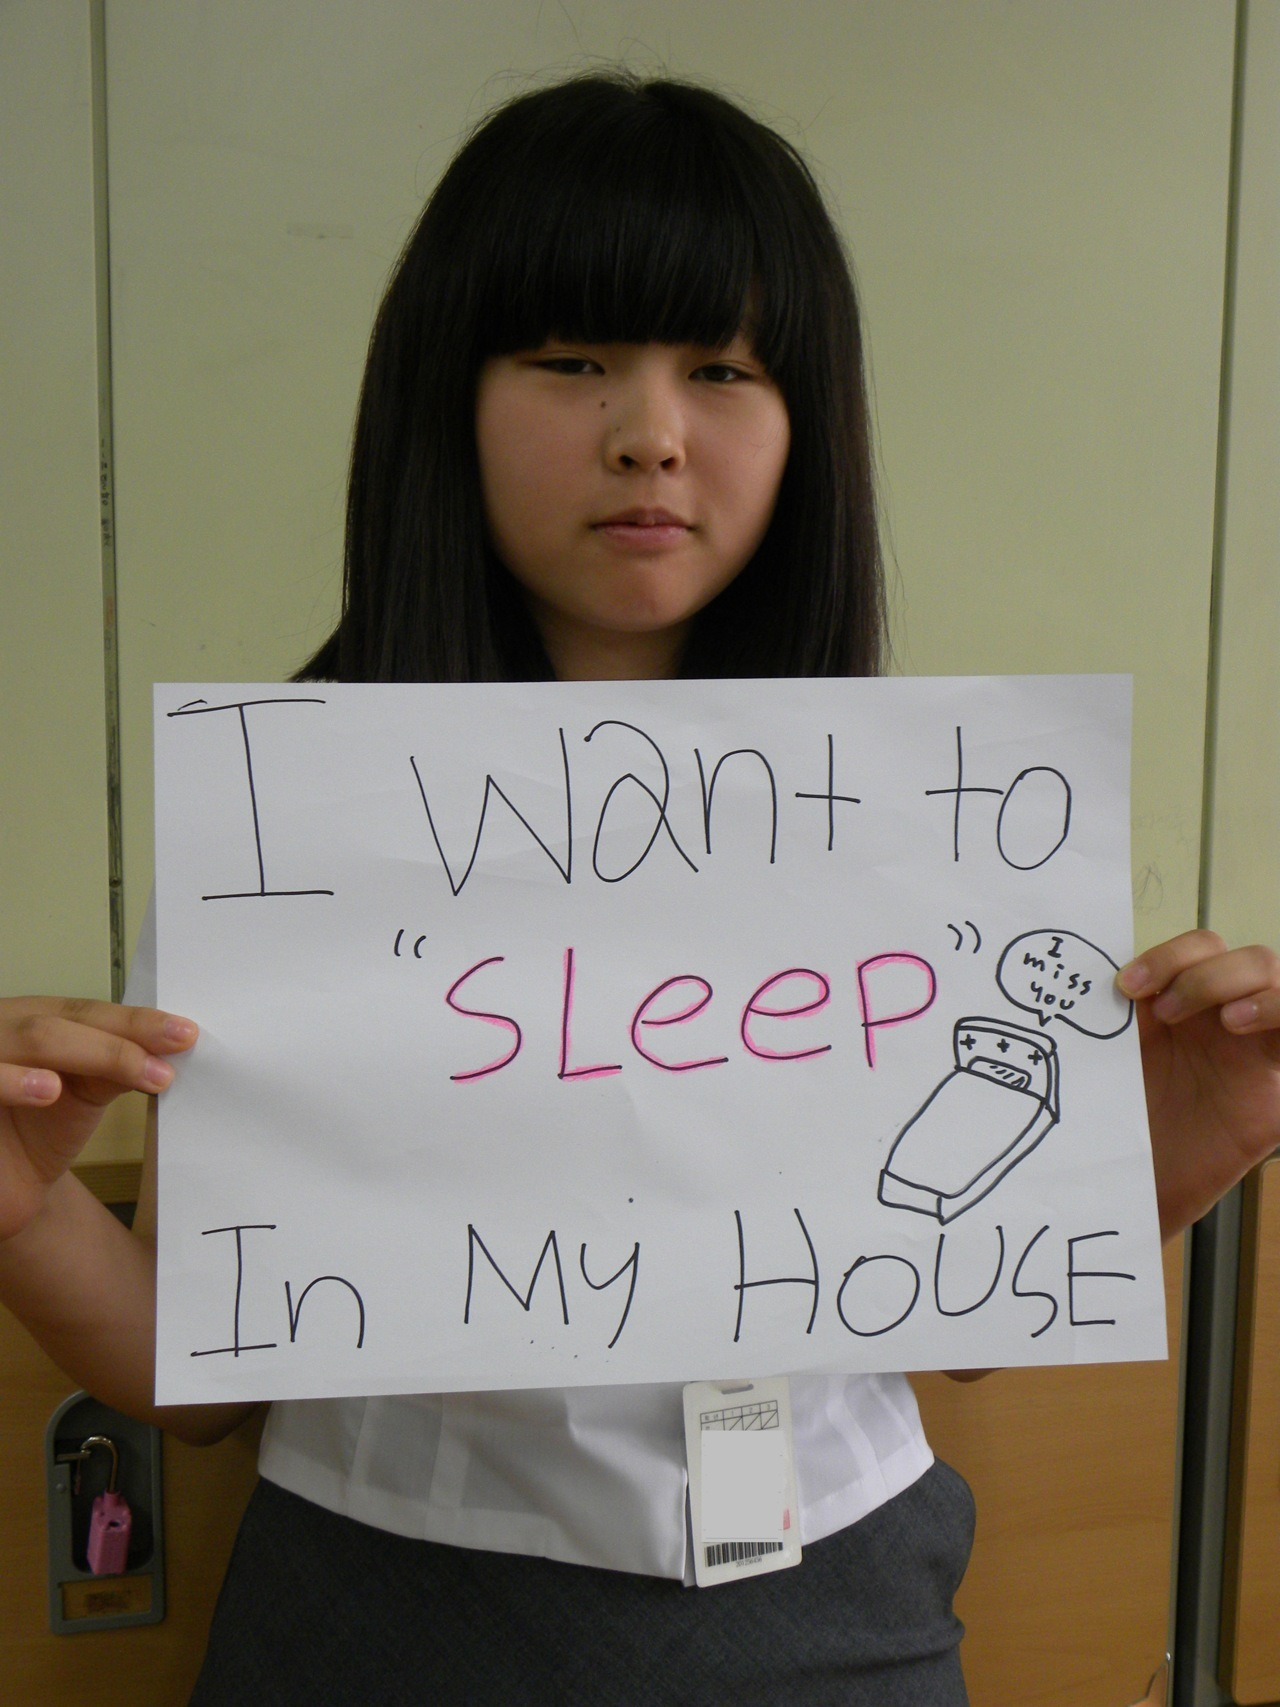 "I want to ""sleep"" In My HOUSE"